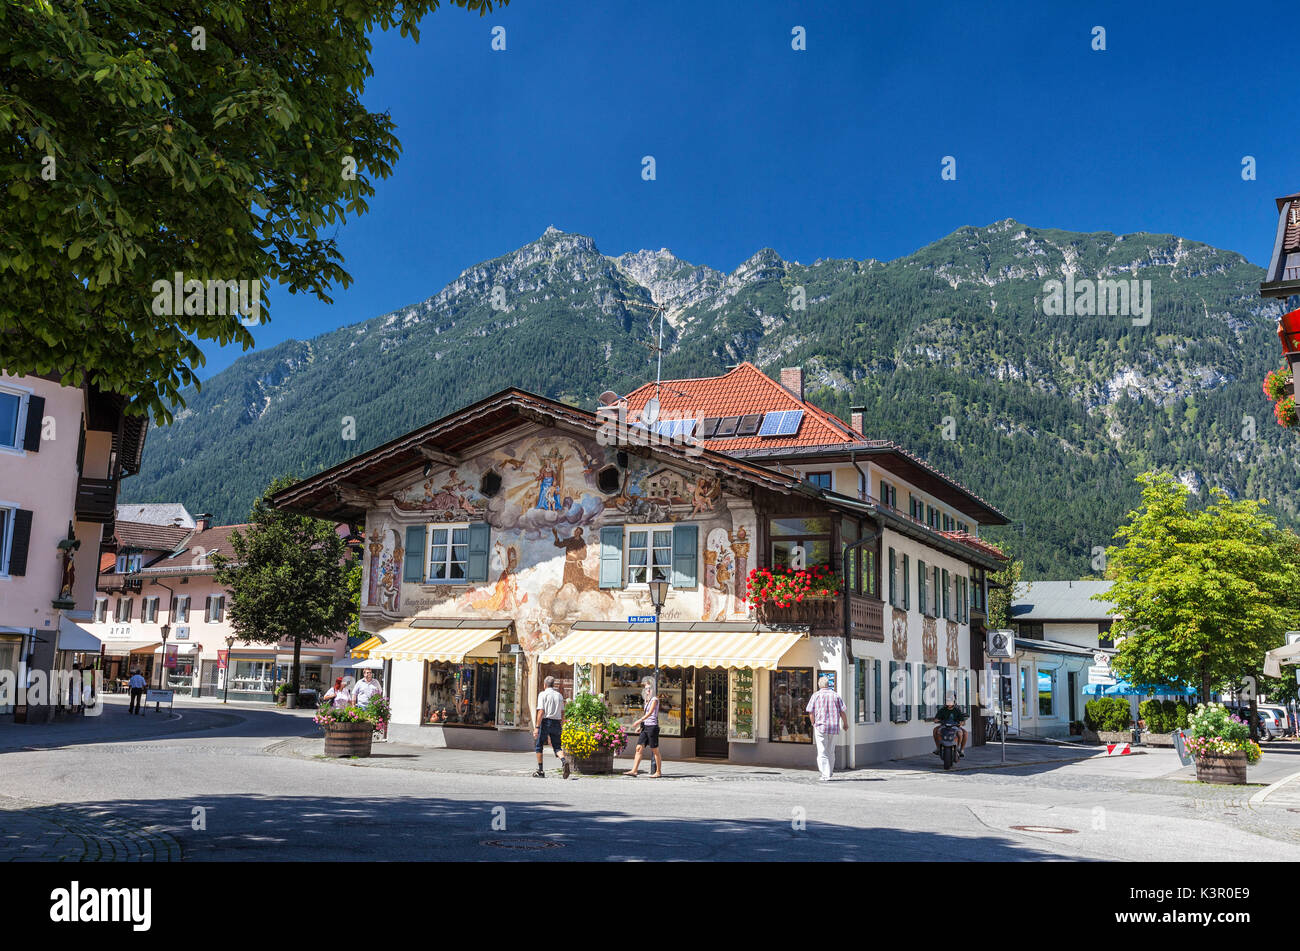 The typical hotels surrounded by peaks and woods Garmisch Partenkirchen Oberbayern region Bavaria Germany Europe - Stock Image